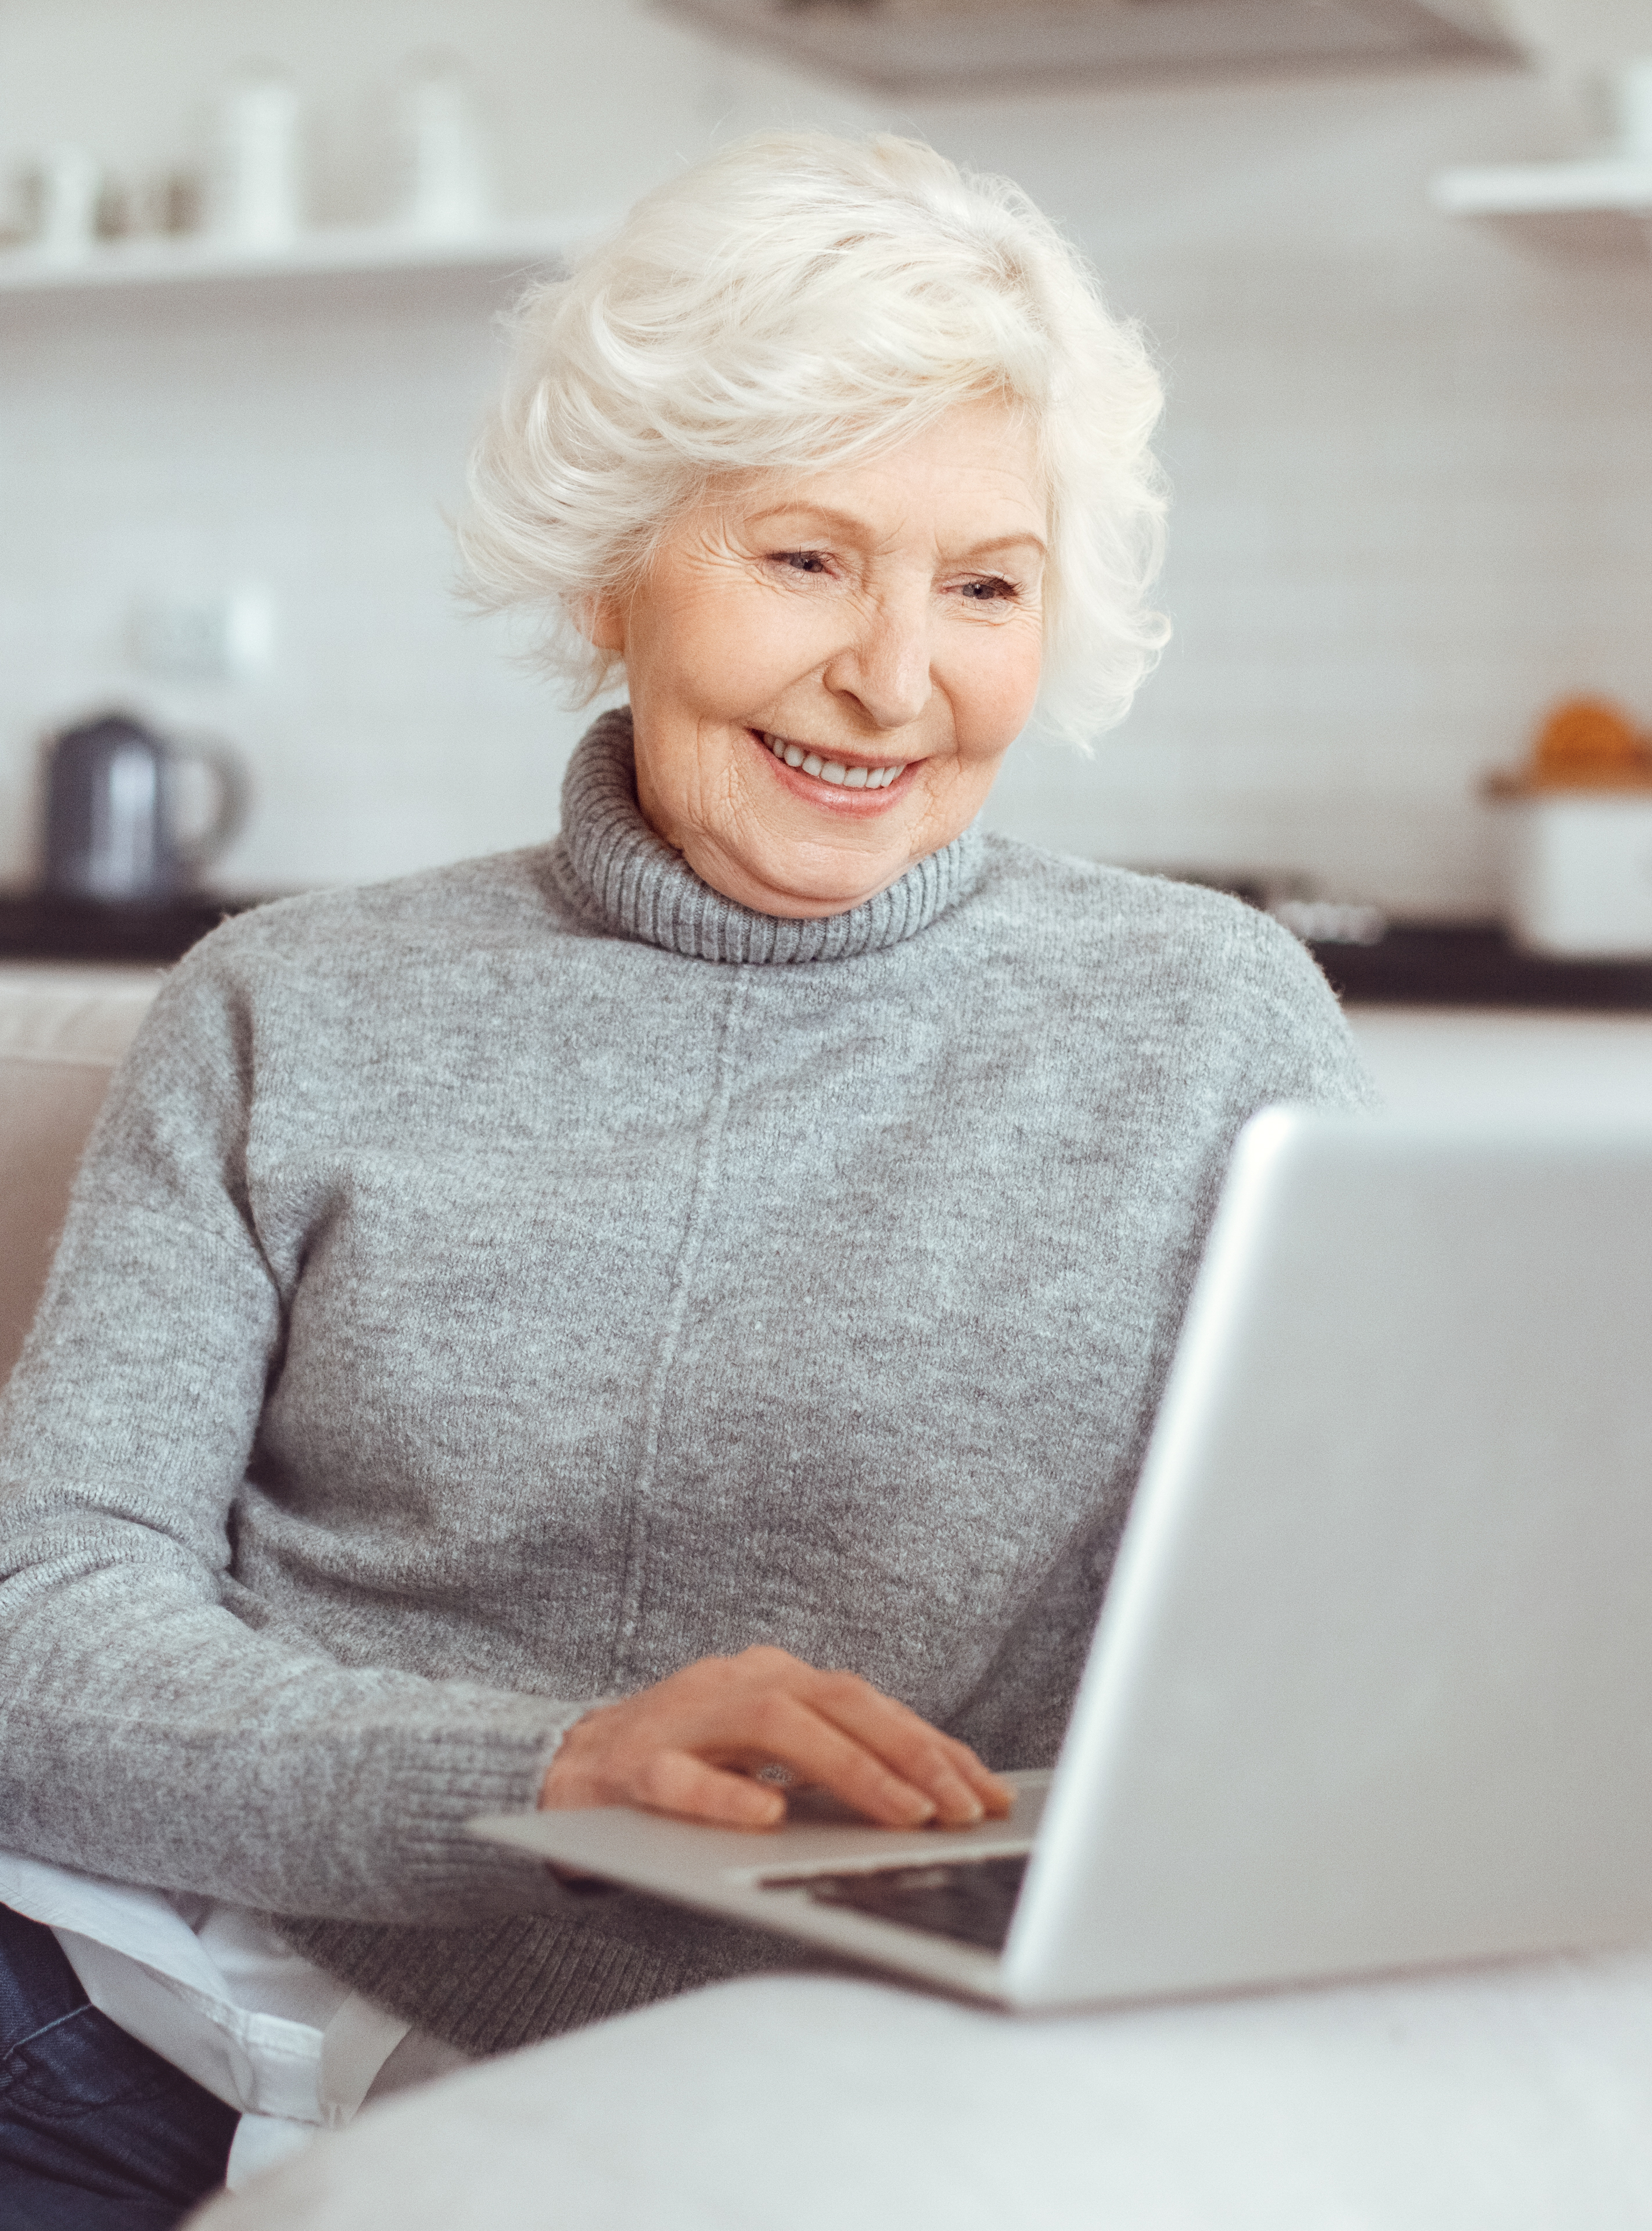 Grandma learns how to work with a computer at home